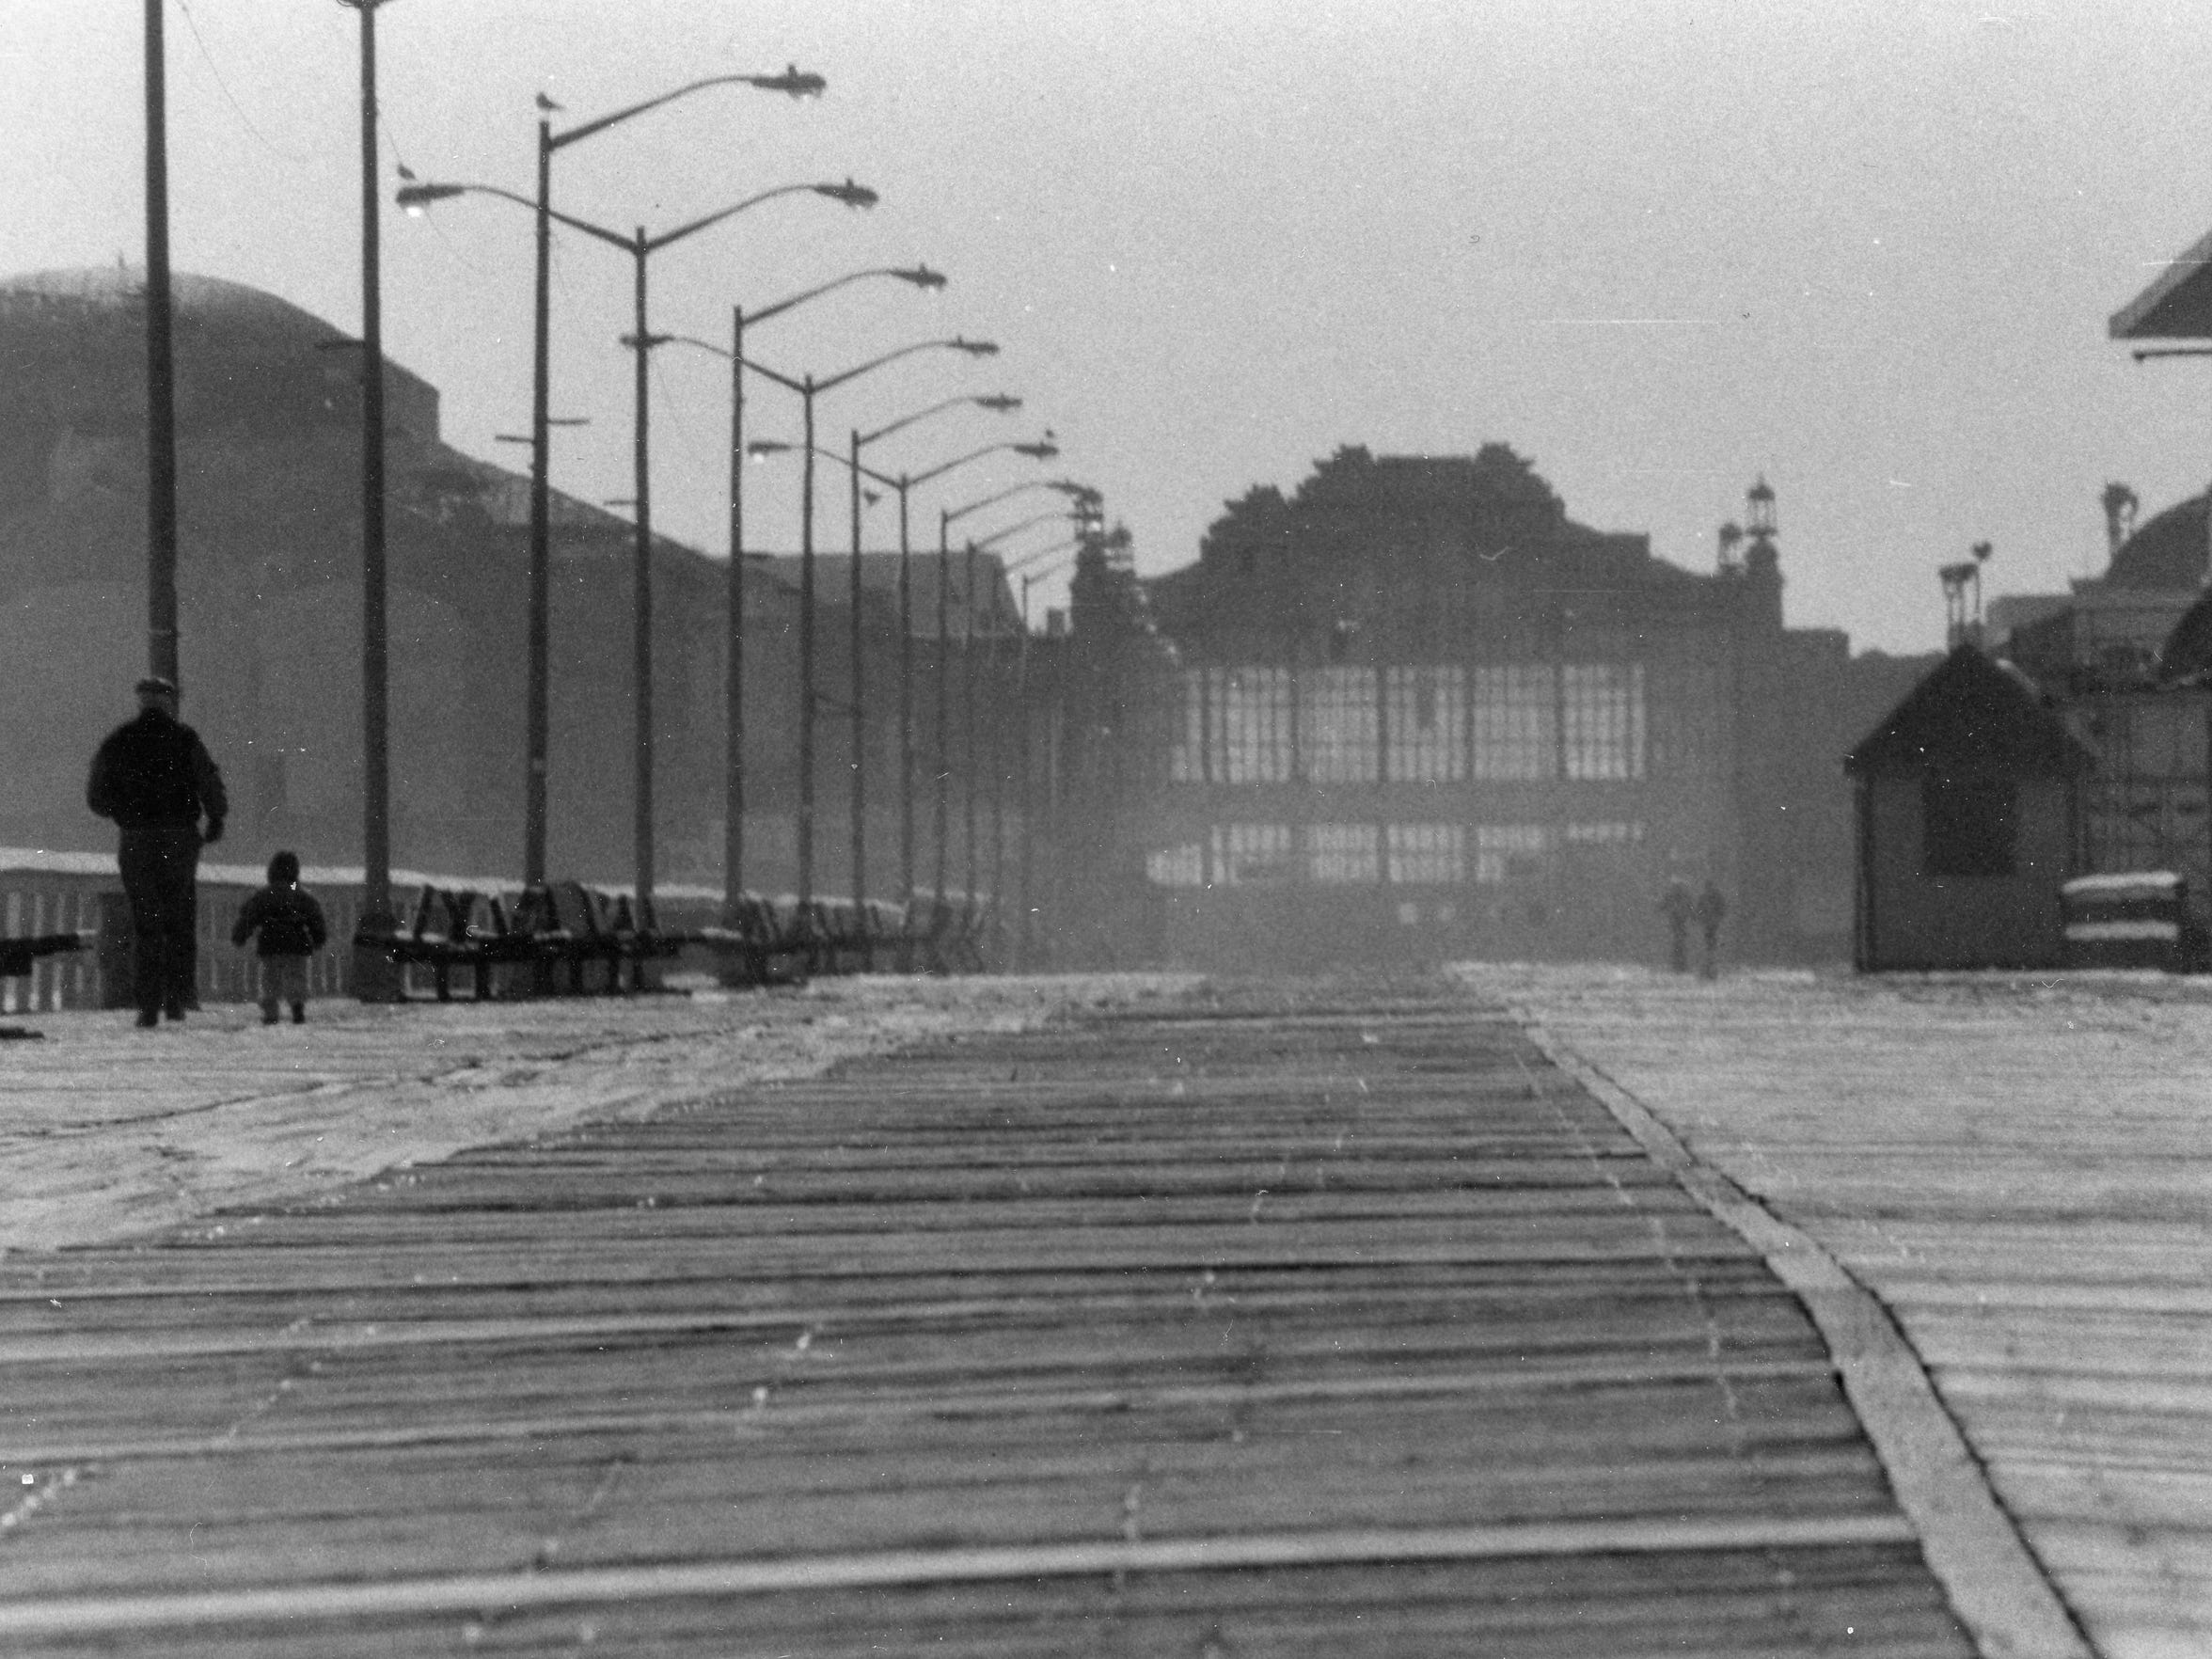 The Asbury Park Boardwalk in 1996 was considerably